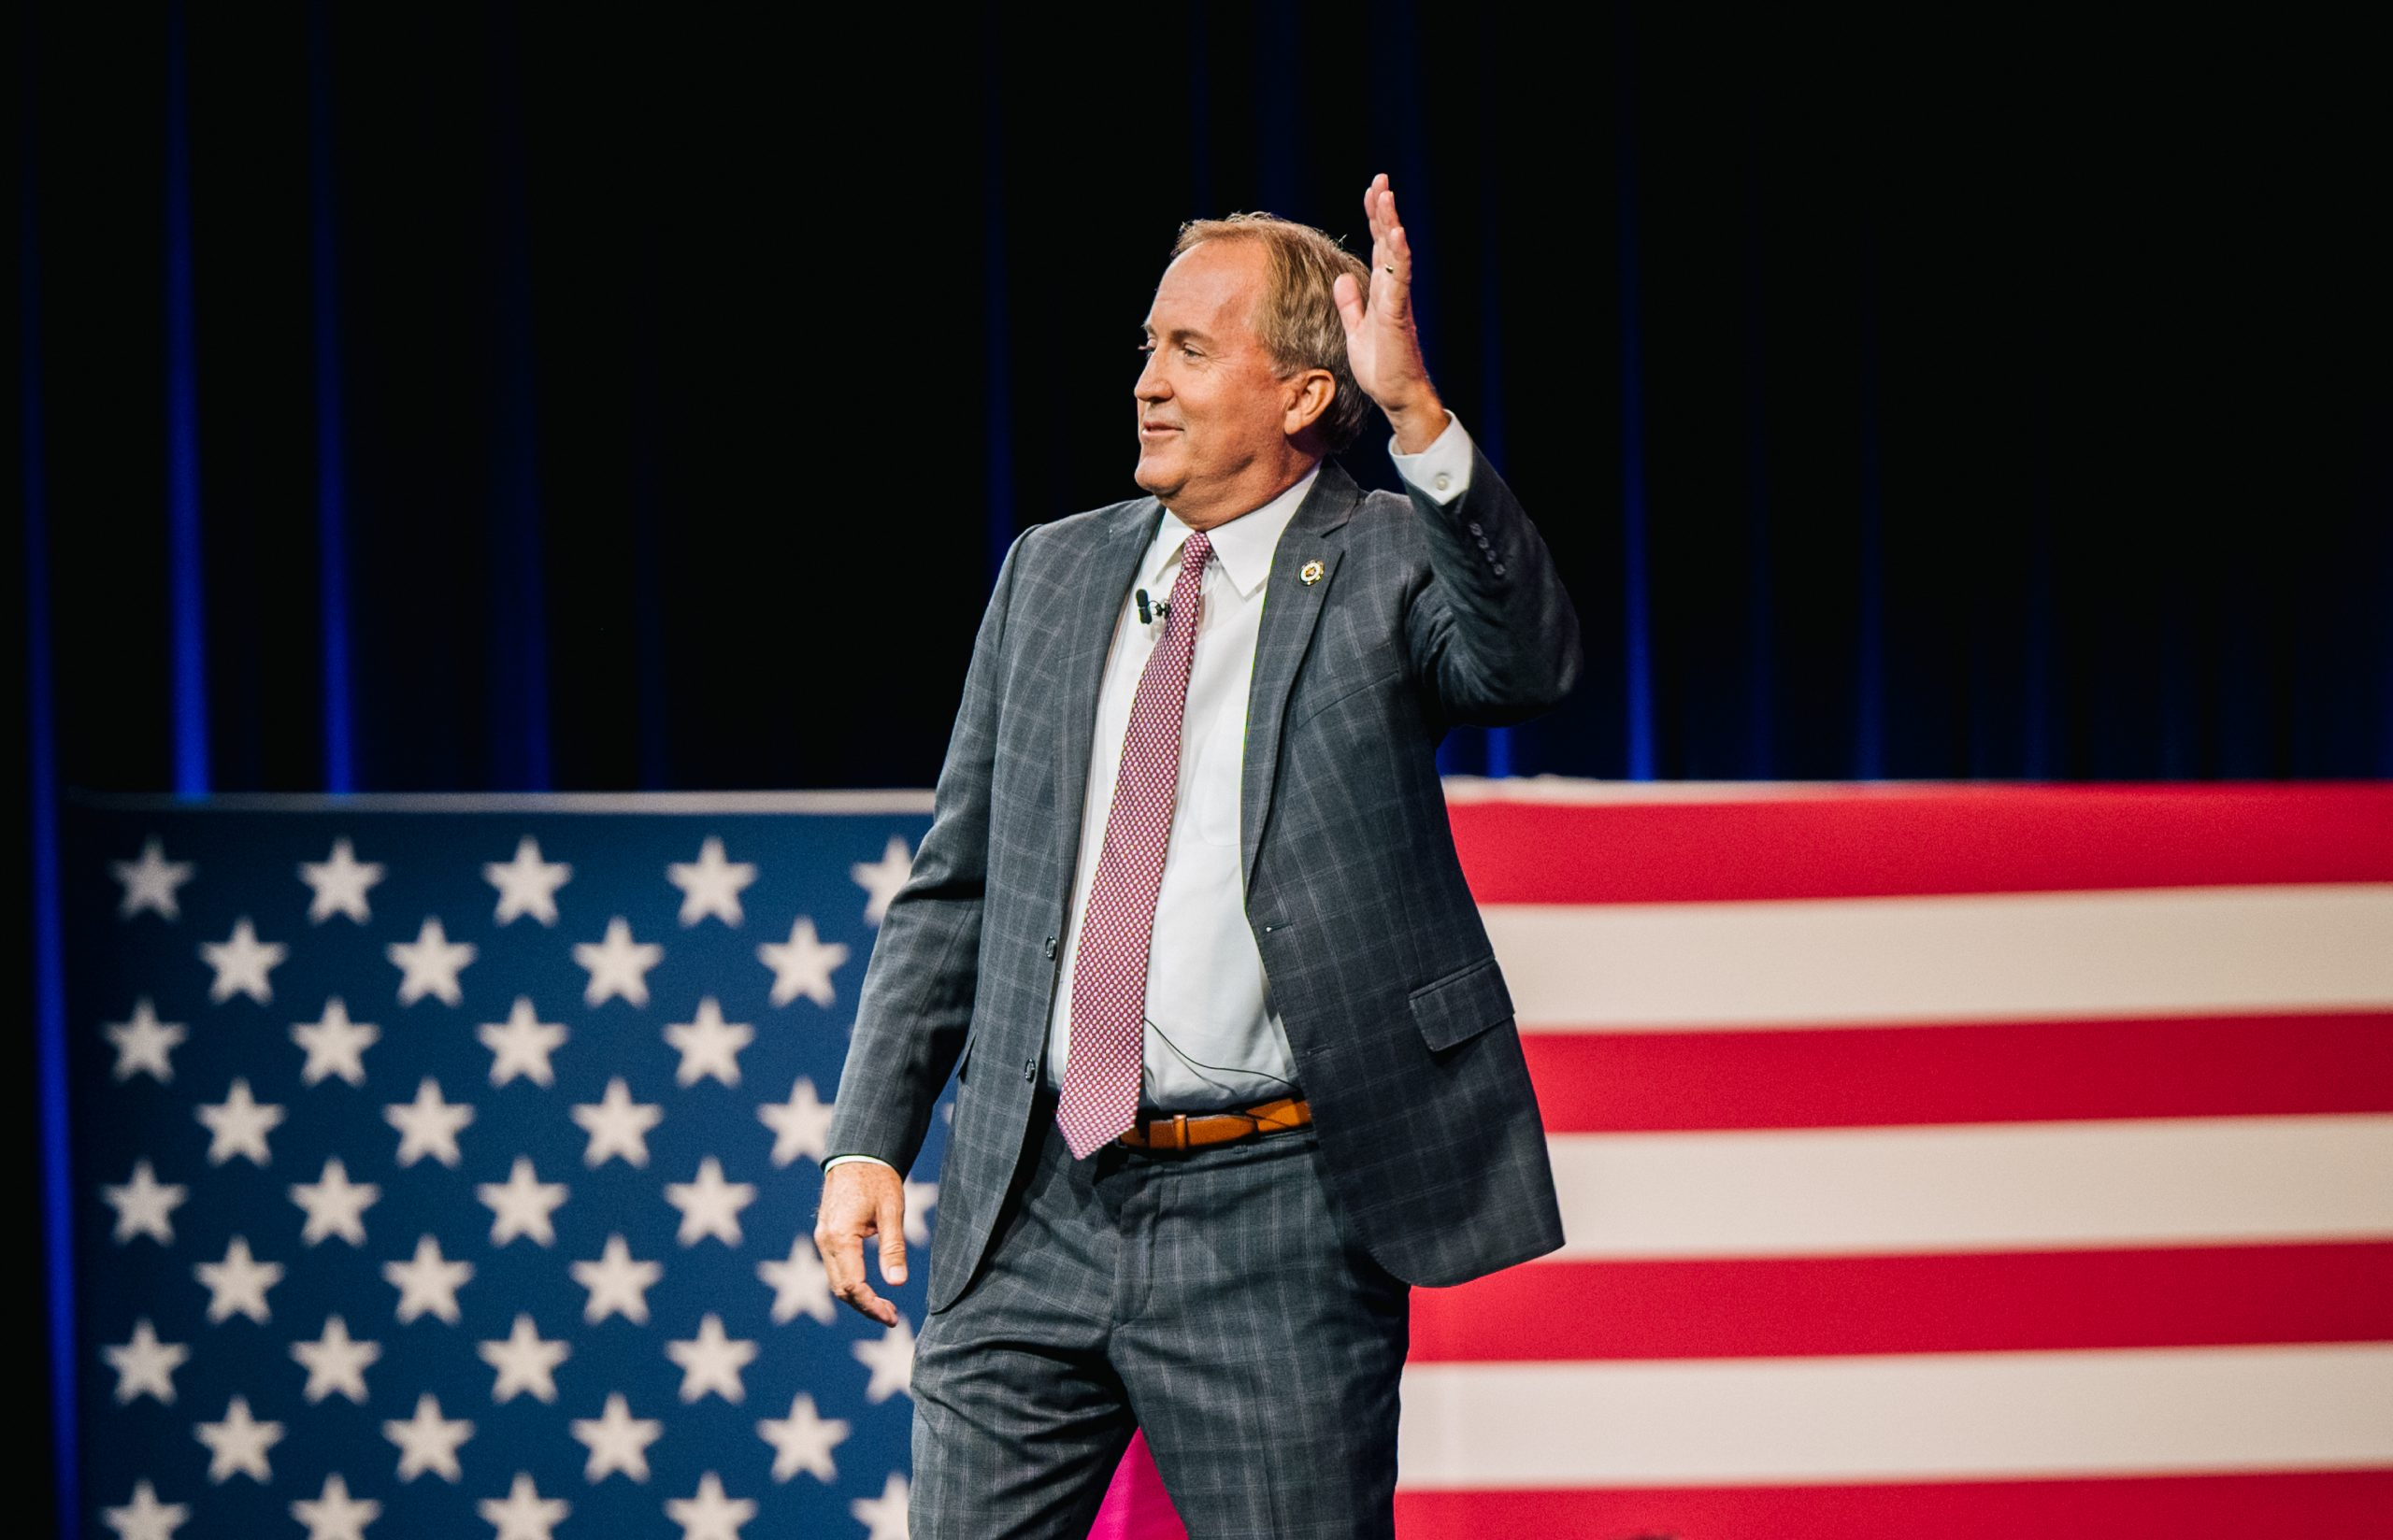 Texas Attorney General Ken Paxton waves after speaking during the Conservative Political Action Conference CPAC held at the Hilton Anatole on July 11, 2021 in Dallas, Texas.